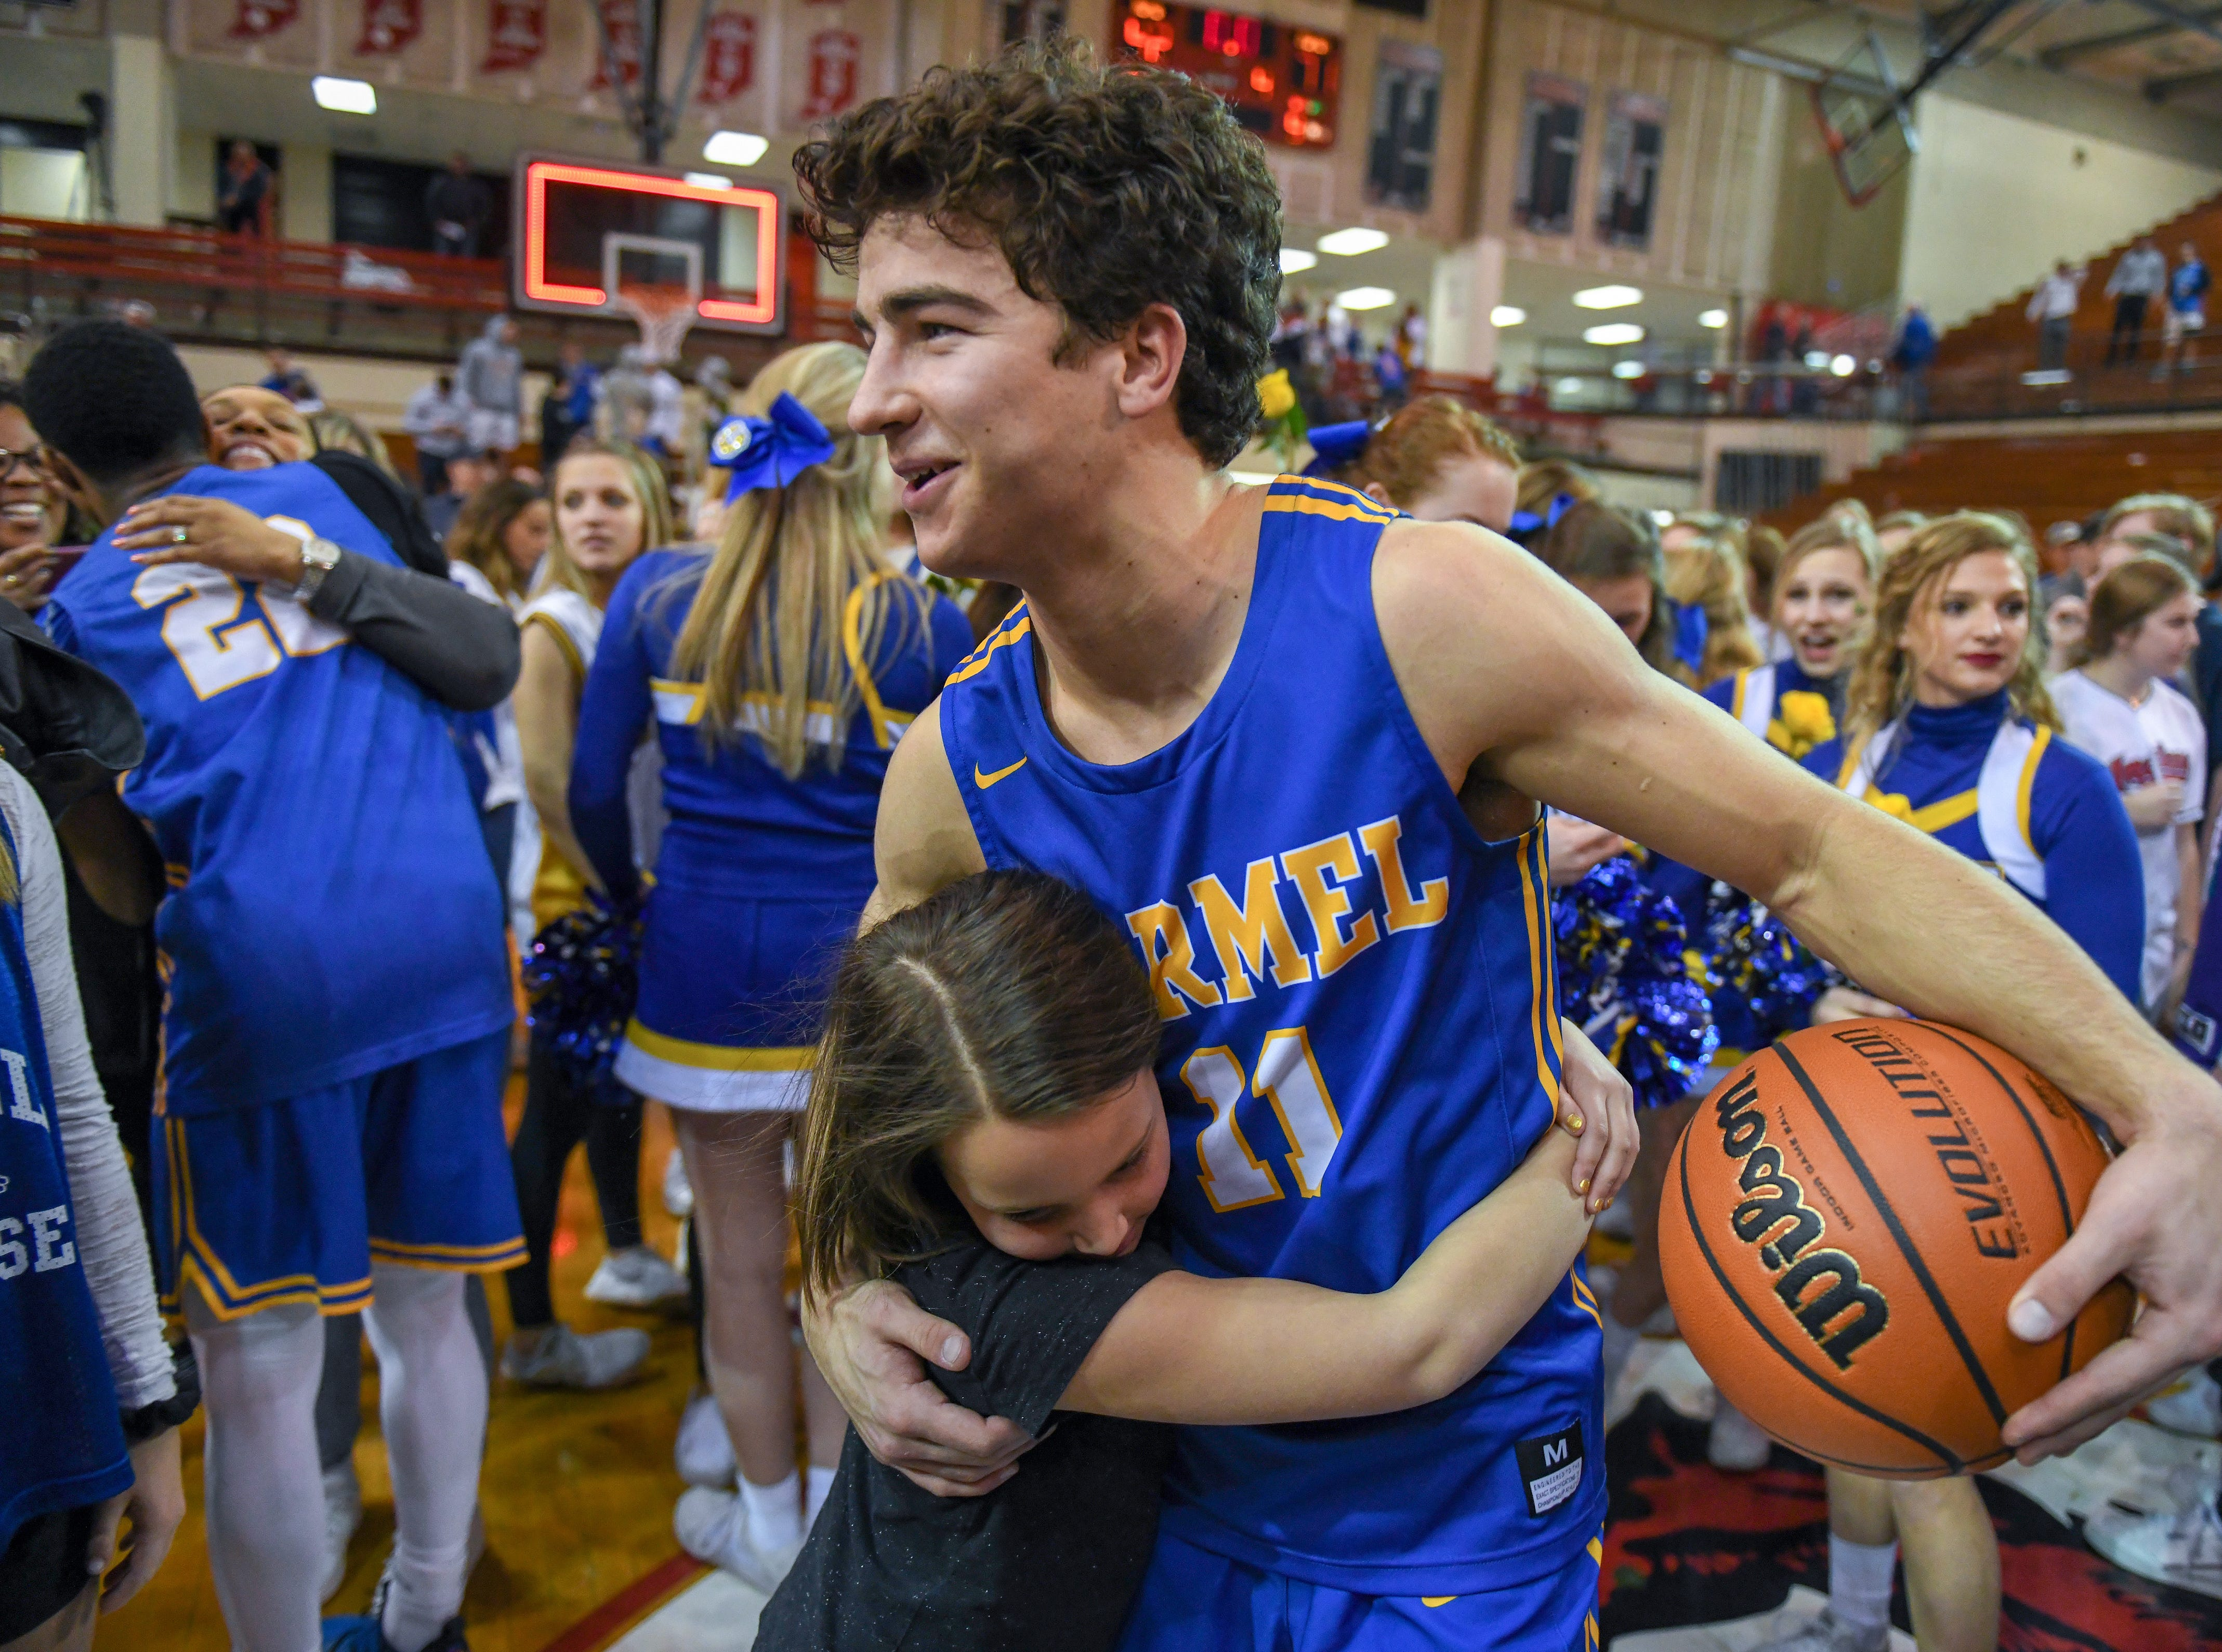 Carmel's Luke Heady gets congratulated after a 71-42 win over Penn High School in Lafayette on Saturday March 16, 2019. Carmel moves on to the state finals after winning the 4A semi-state today.